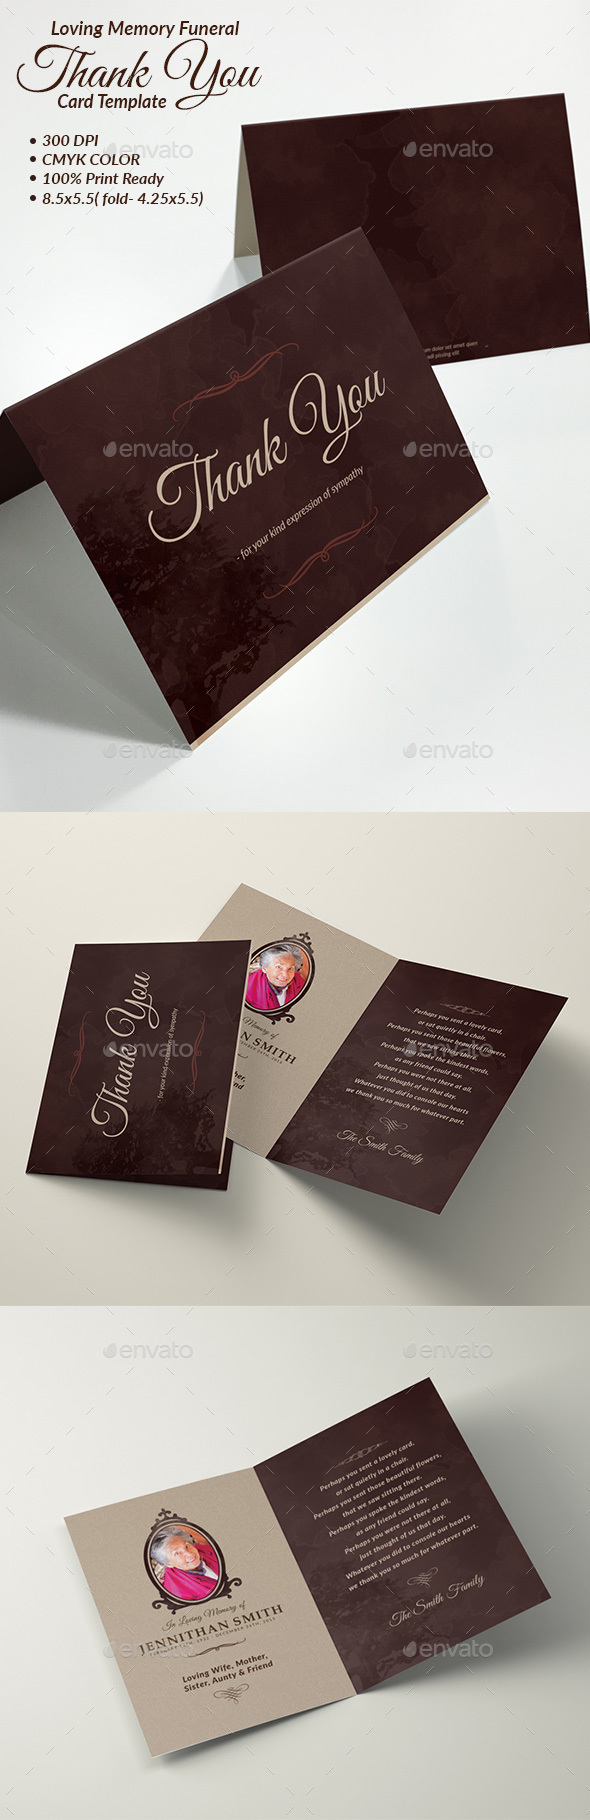 Loving memory funeral program thank you card template by for Funeral memory cards free templates